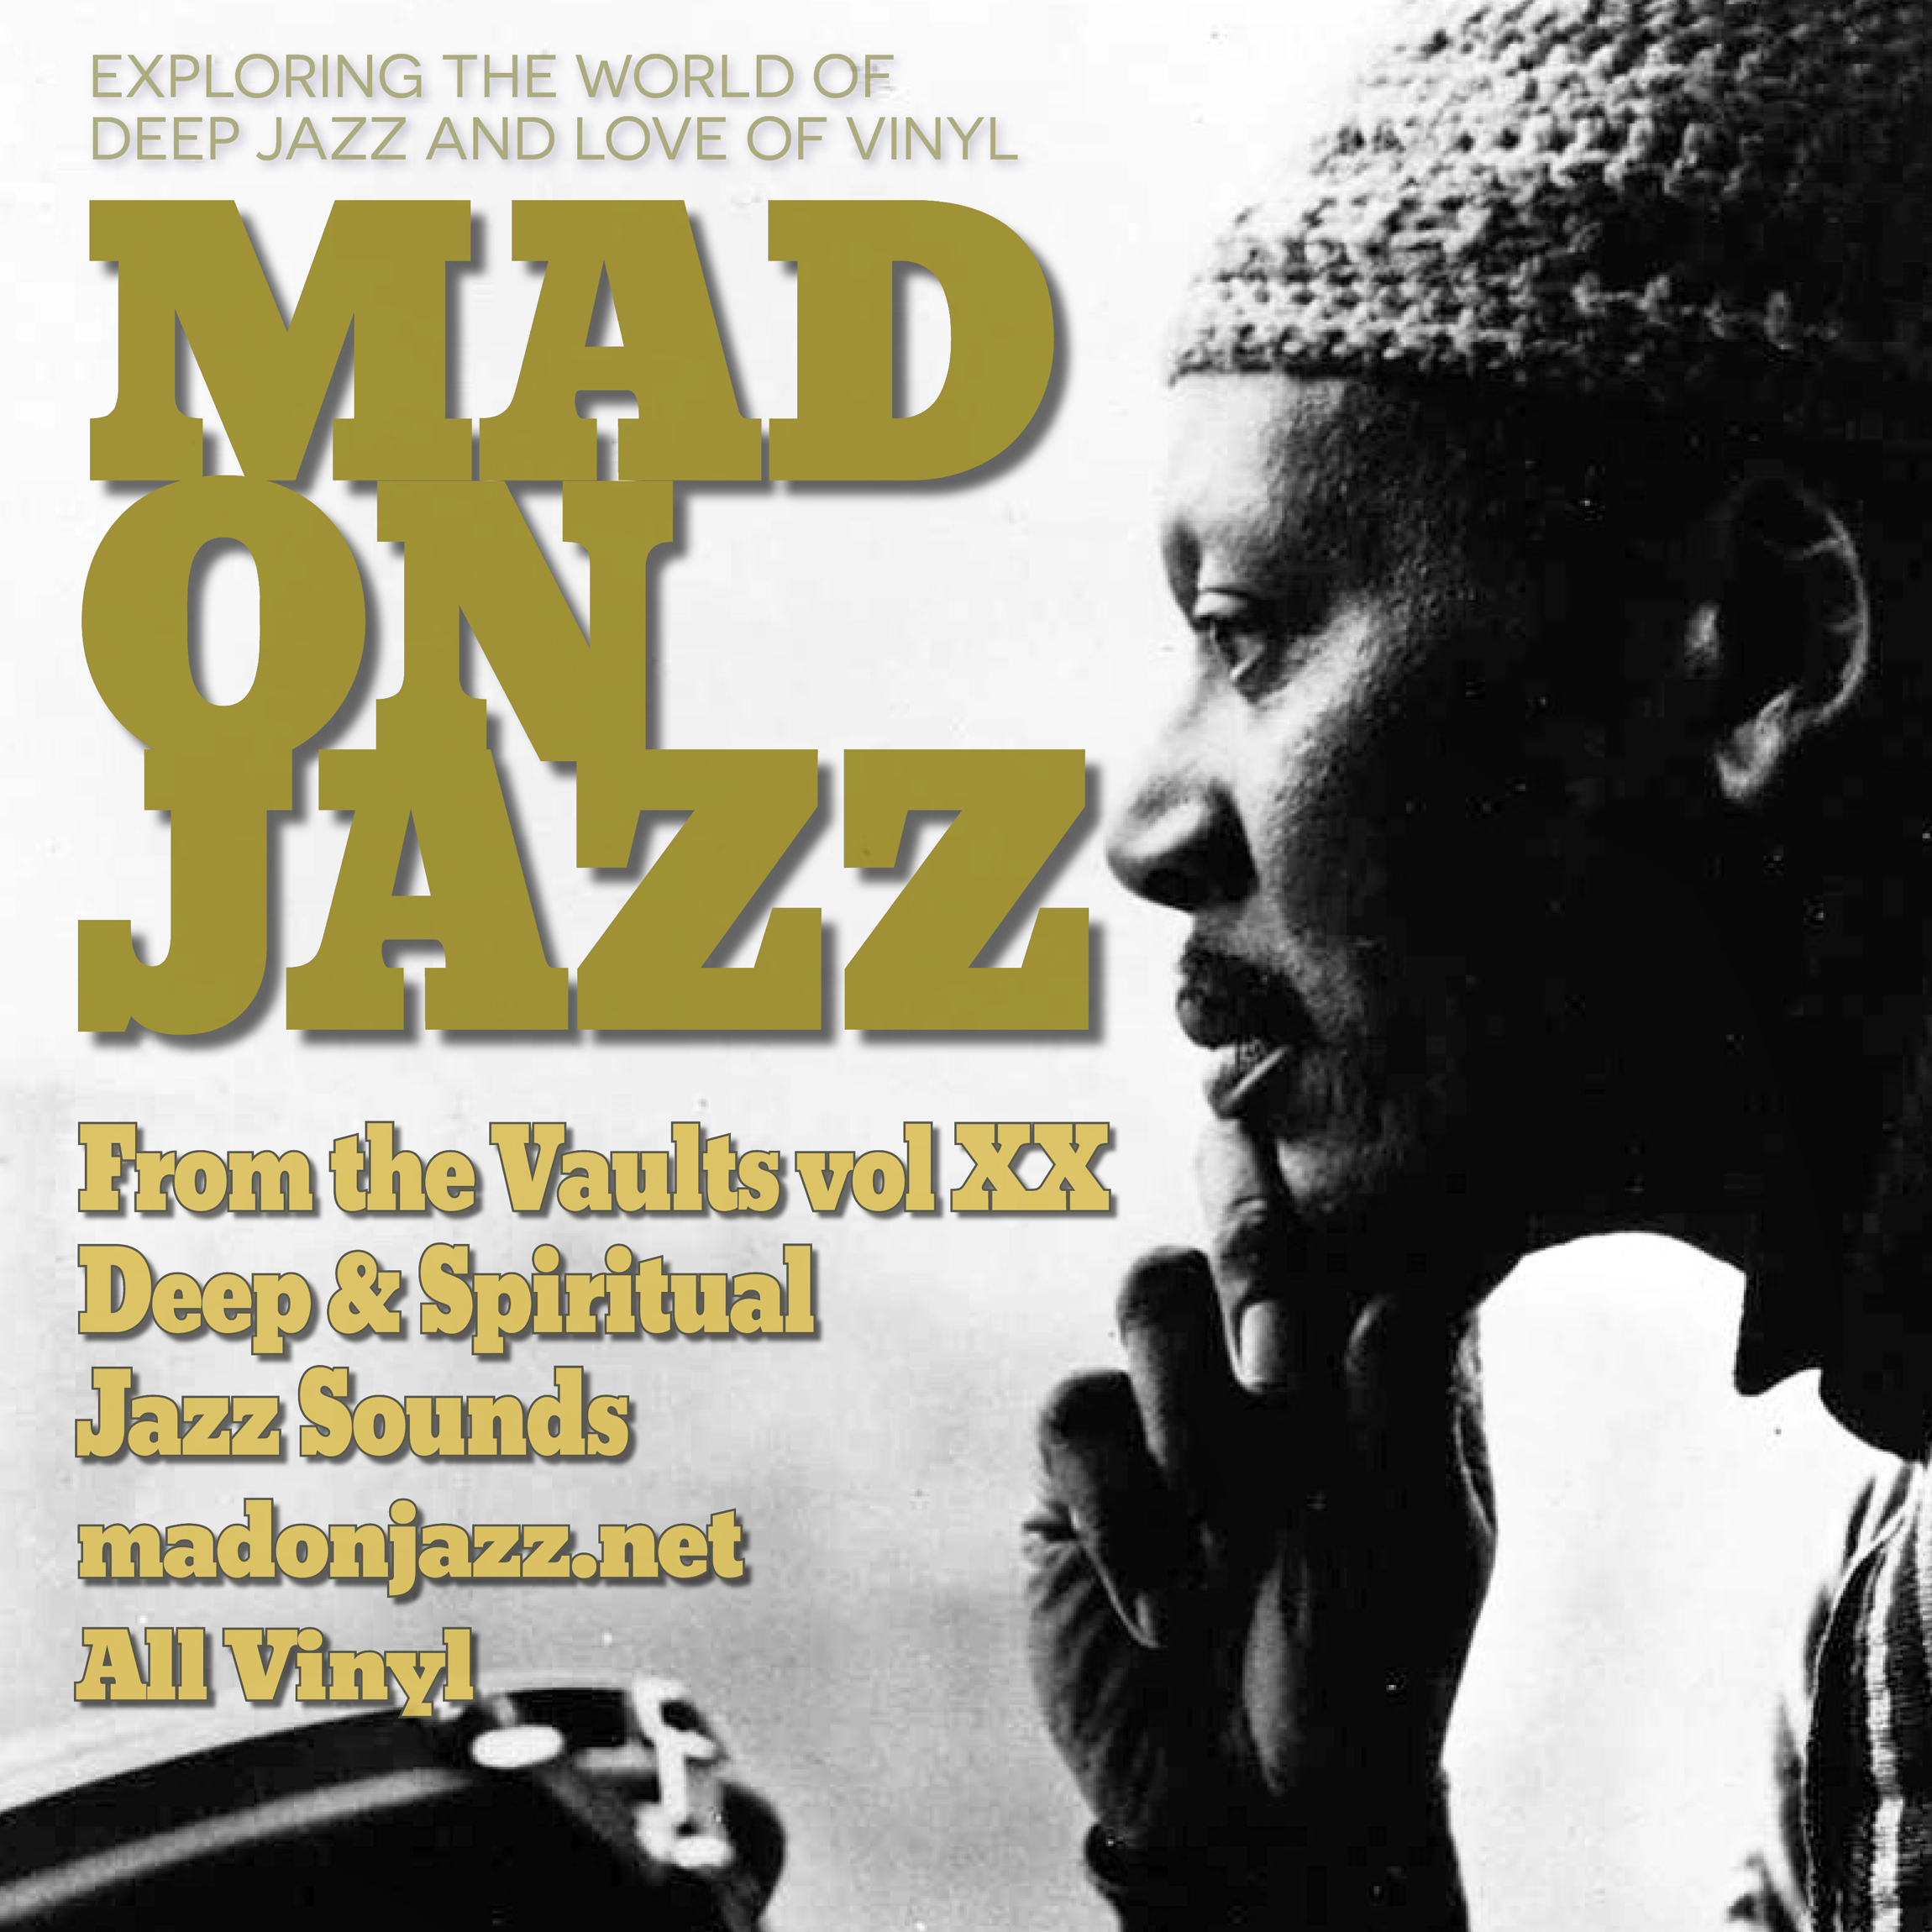 MADONJAZZ From the Vaults vol 20: Deep & Spiritual Jazz Sounds - Randy Weston